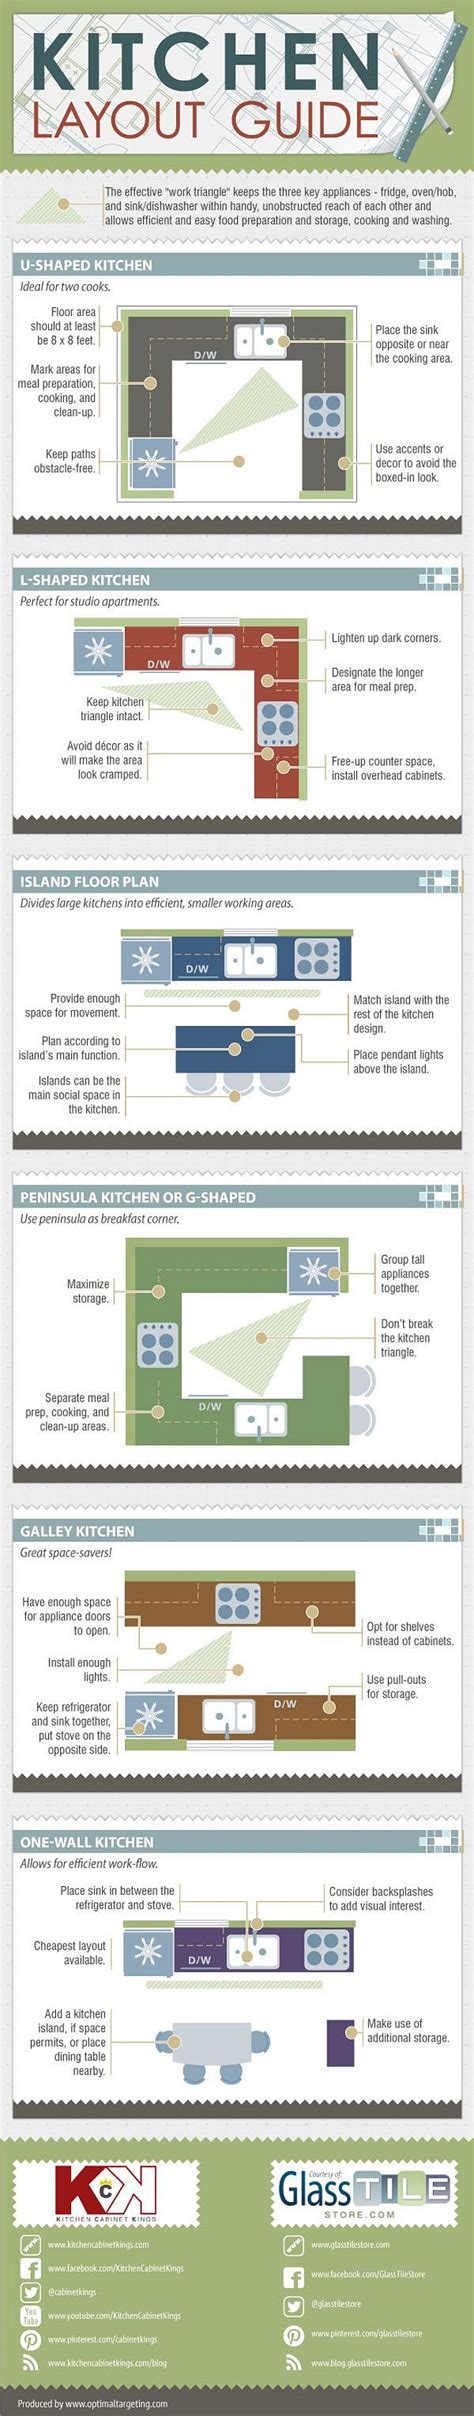 how to become an interior designer complete guide wisestep 100 interior design ideas home bunch interior design ideas